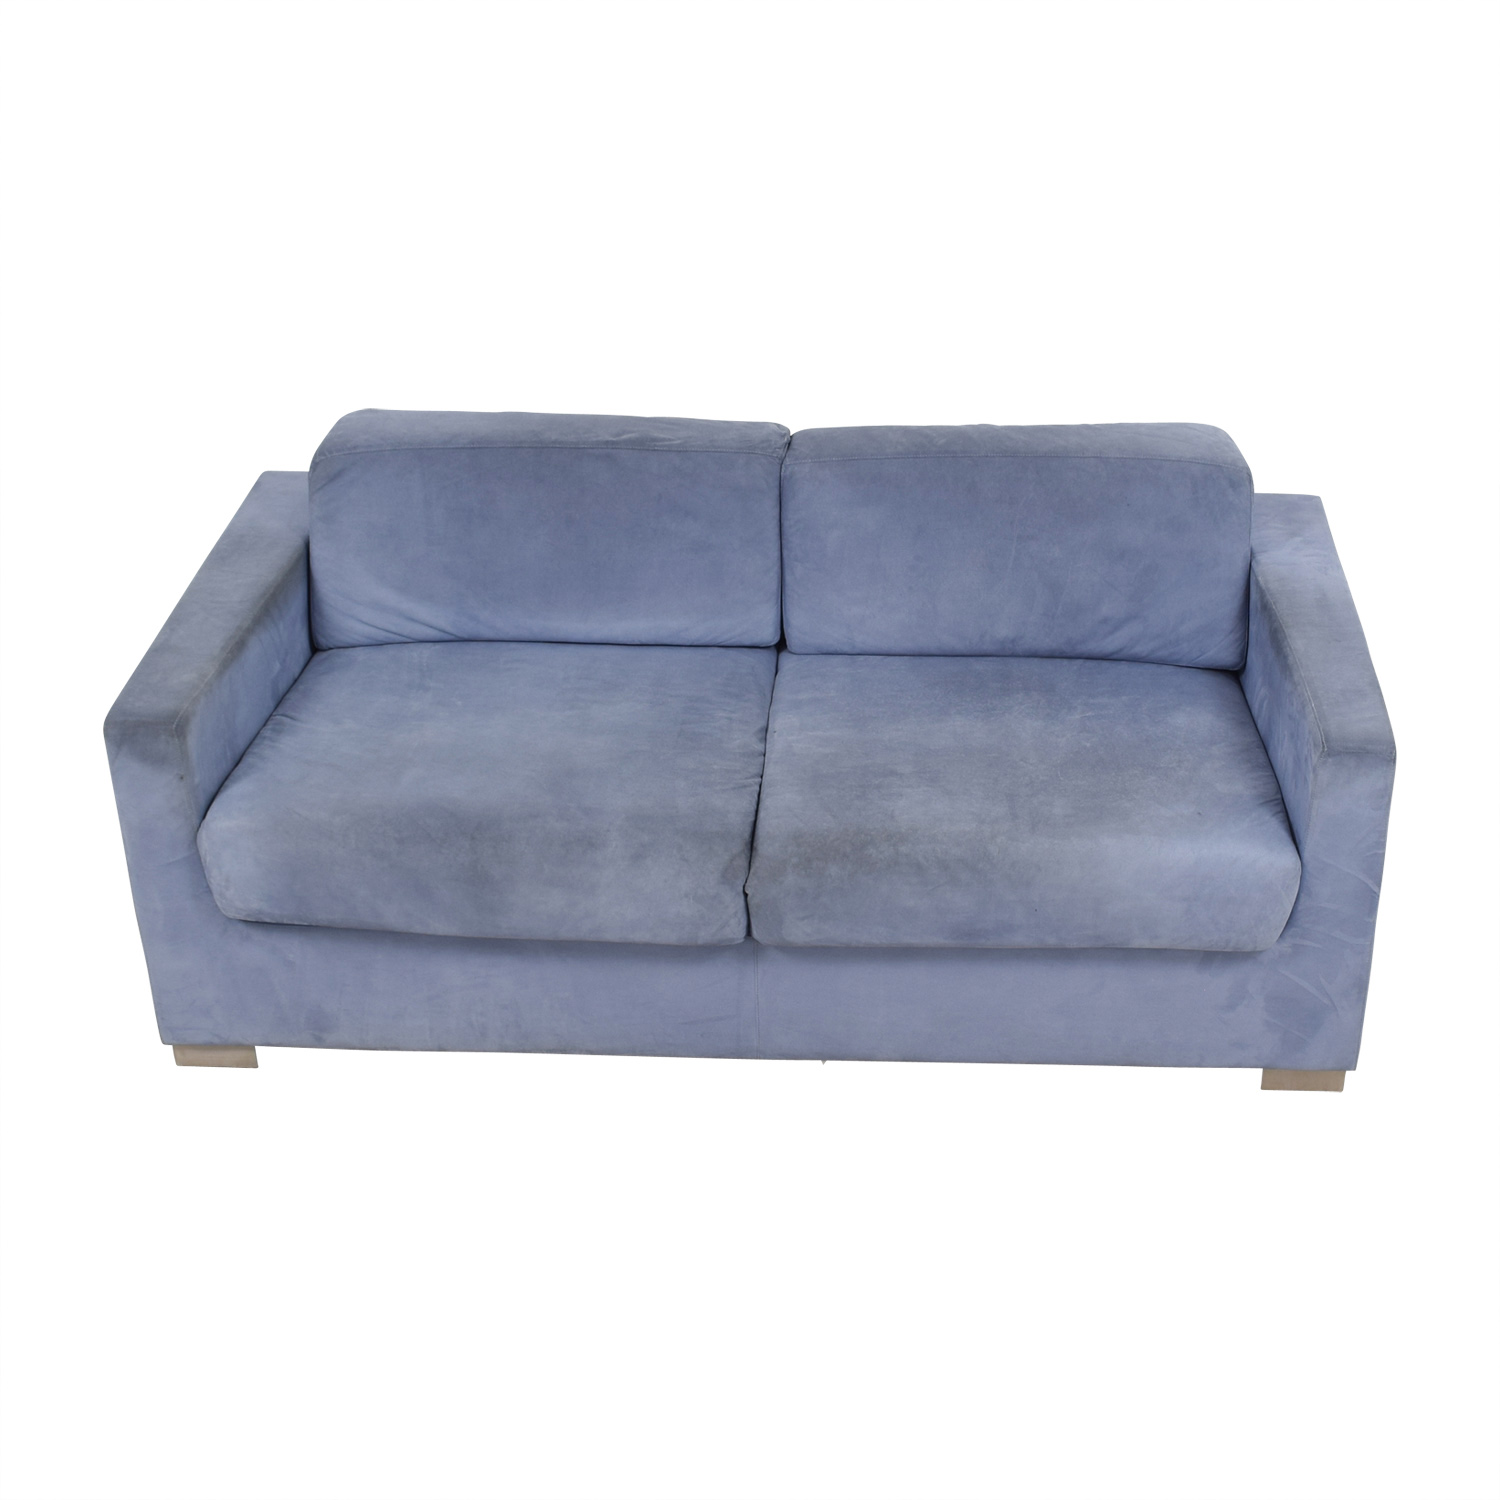 Bettsofa Xenia Sofa Bernhardt Com Us Sofas Edinburgh Gumtree Flexsteel Sleeper